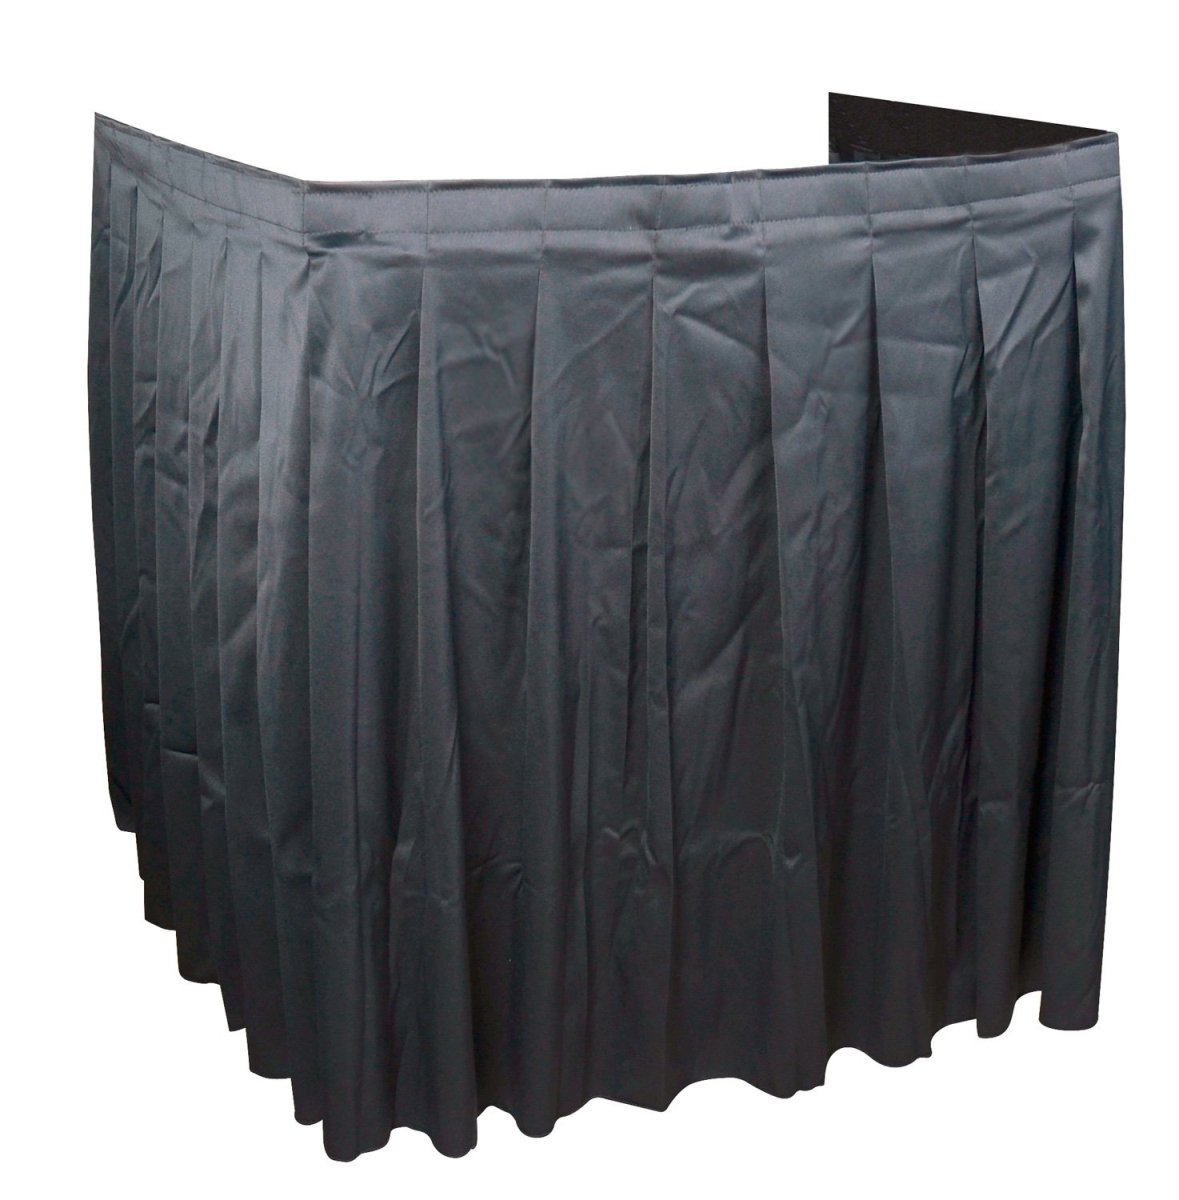 Unique Product Solutions SKIRT-34-4A 84 x 30 in. AV Cart Skirting - 4-Sided Accordian - Black